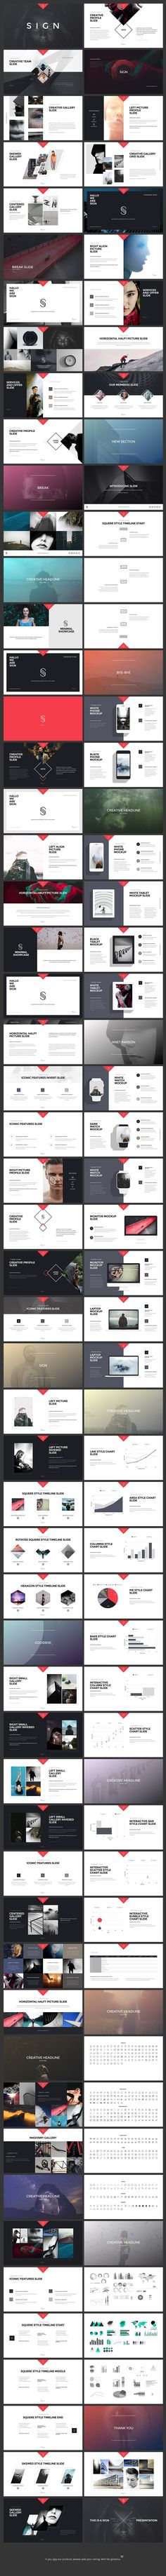 practical - clean trend keynote template | keynote, template and, Presentation templates